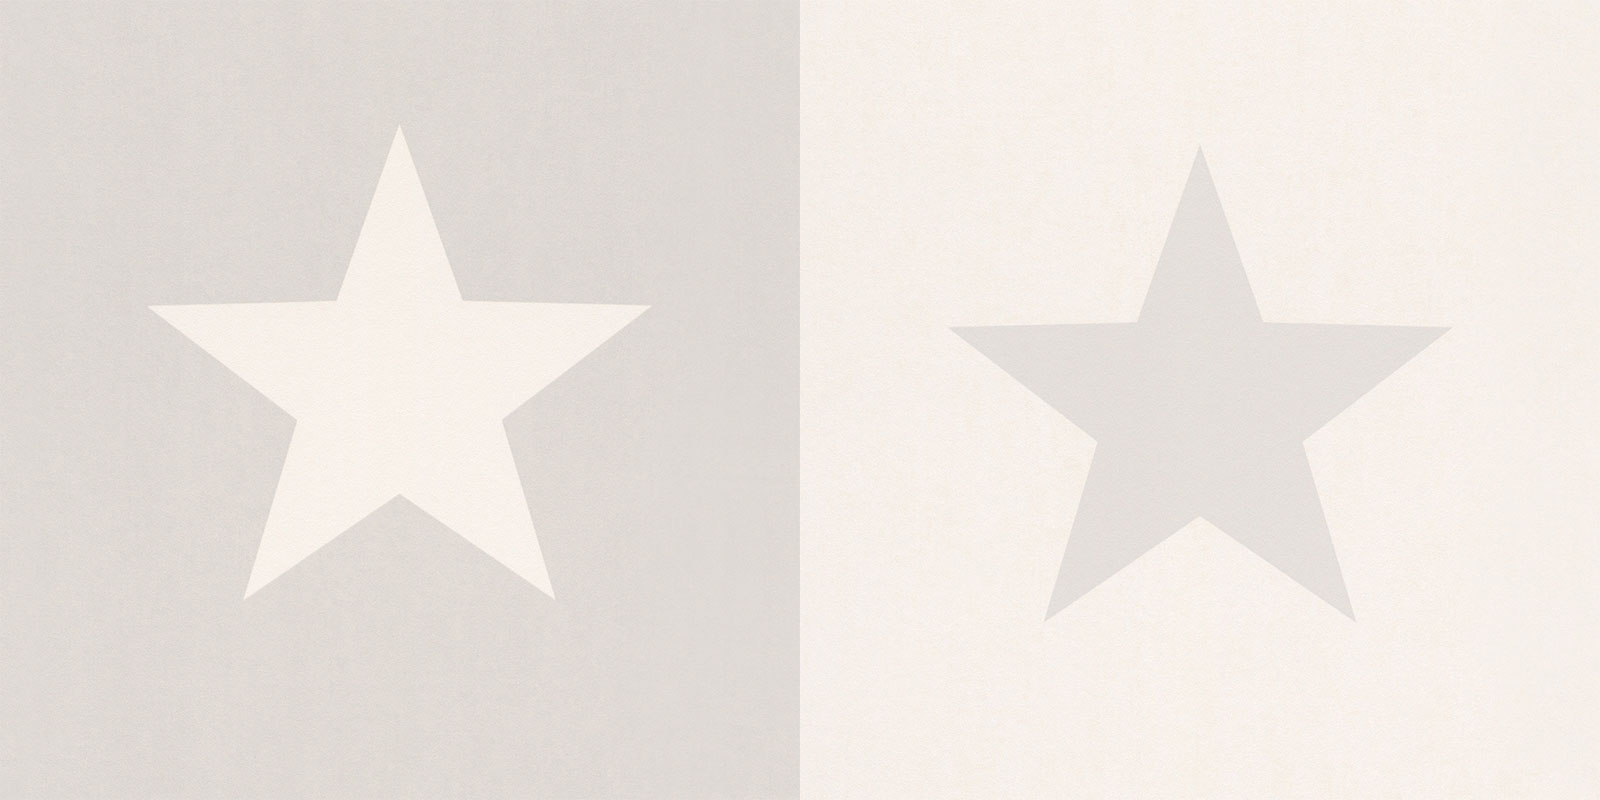 Grey and White Large Star Wallpaper